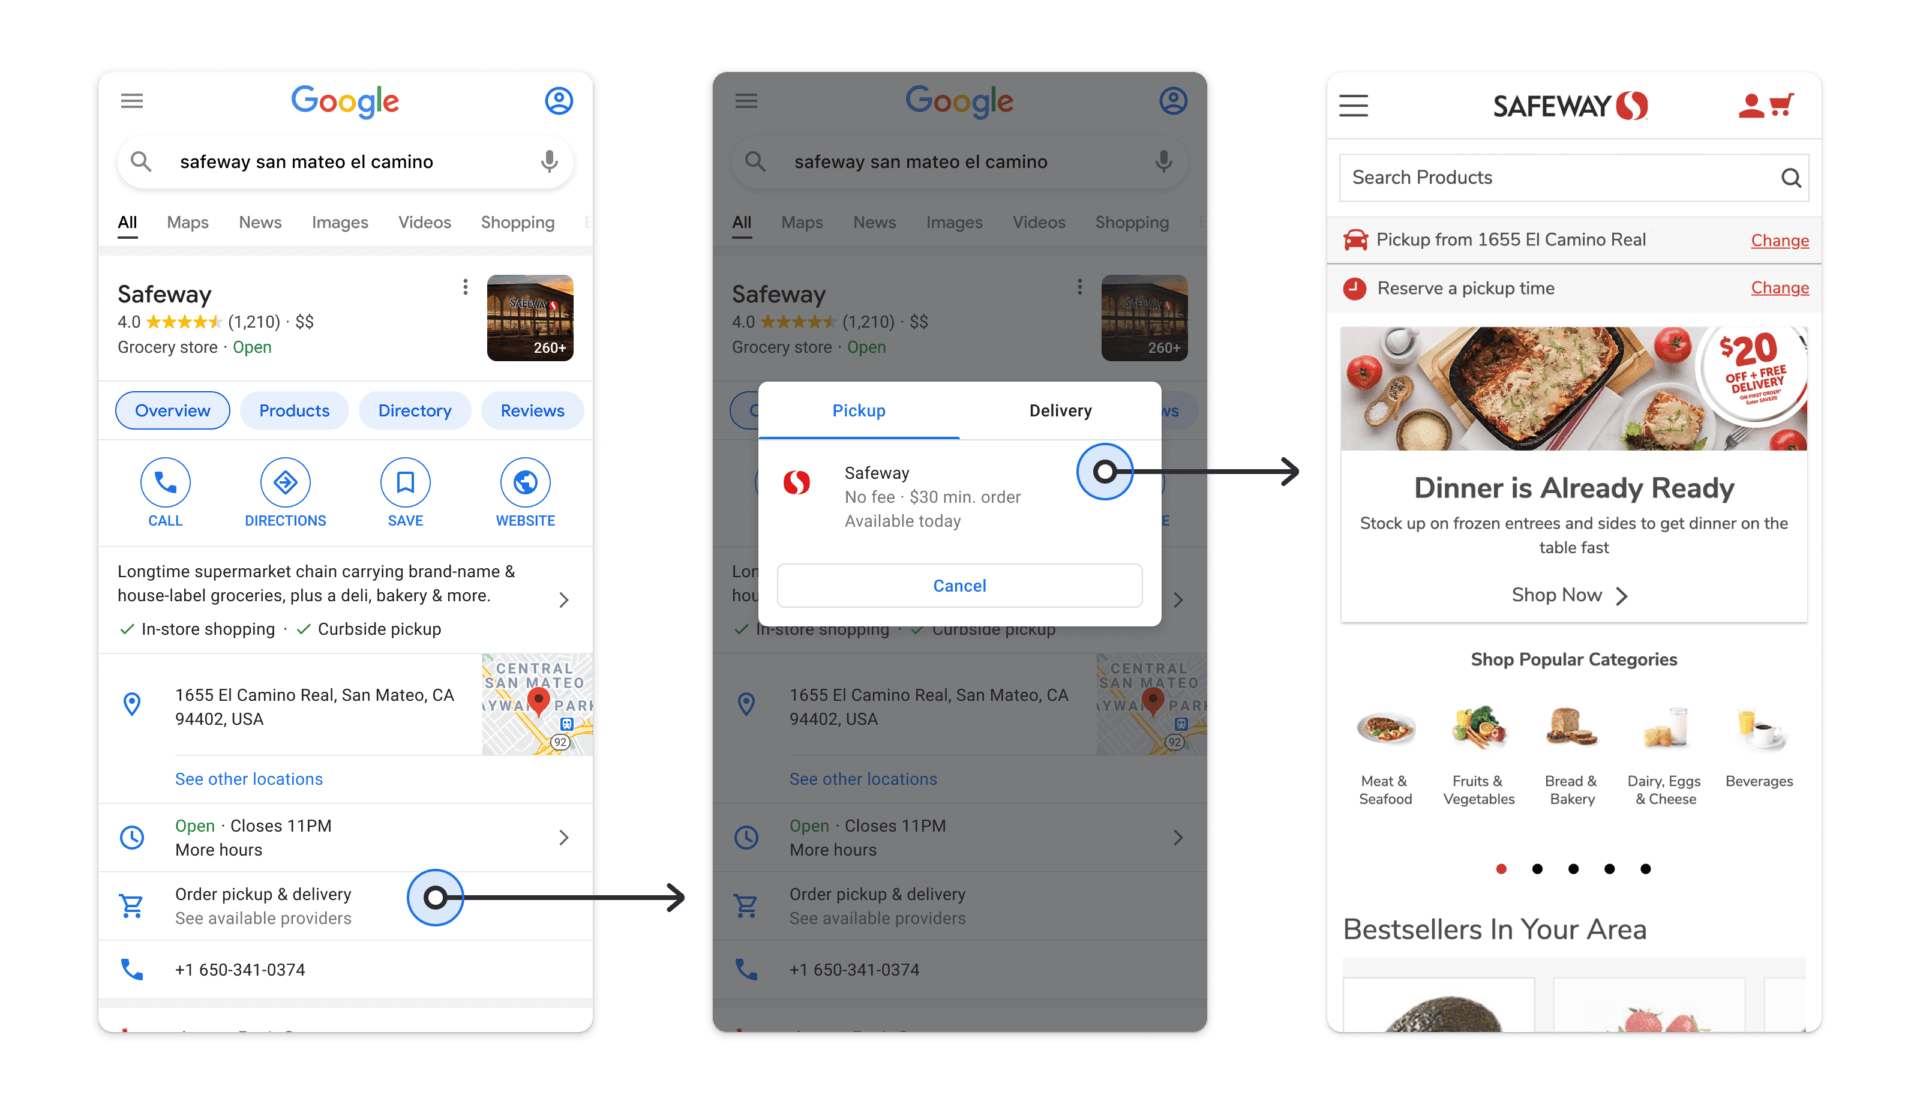 googles-latest-maps-and-gmb-features-up-the-ante-for-competing-platforms-wednesdays-daily-brief Google's latest Maps and GMB features up the ante for competing platforms; Wednesday's daily brief